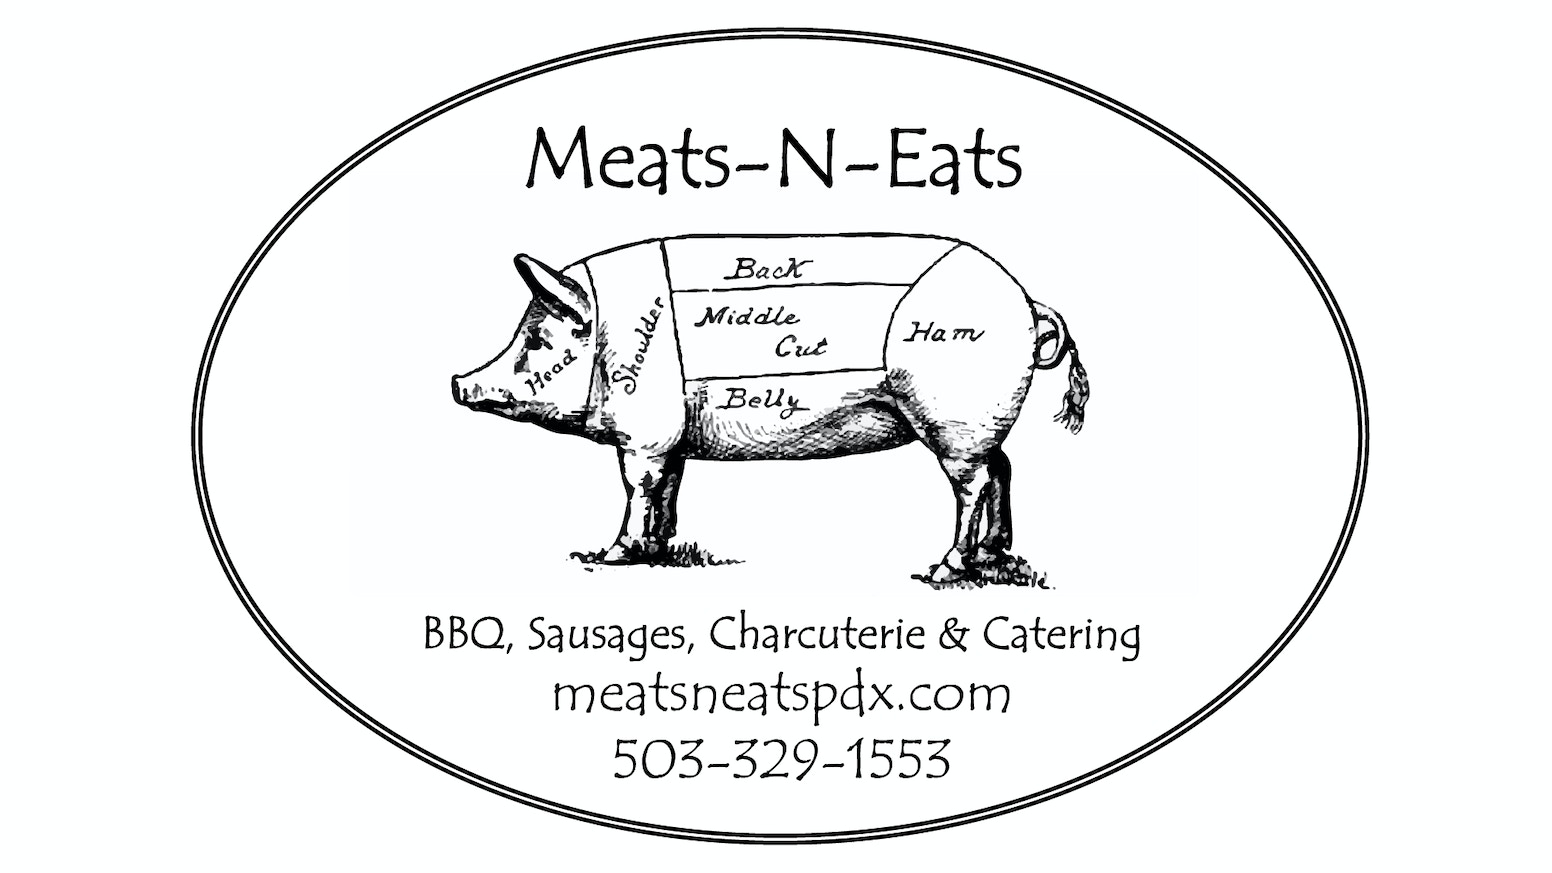 Meats-N-Eats Provisions & Catering by Jonathan Hines